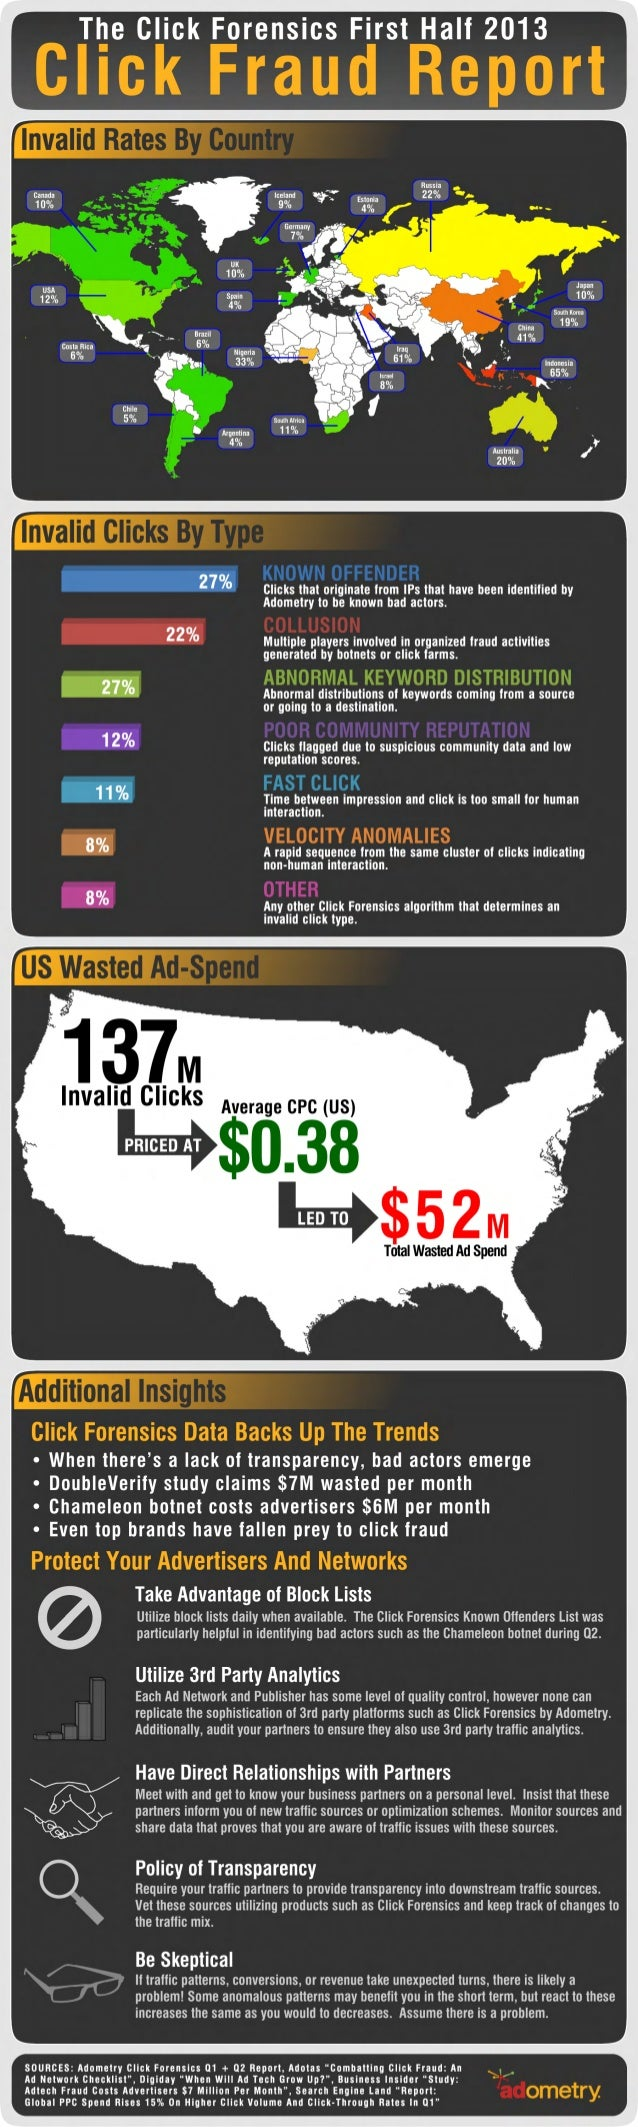 The Click Fraud Report: First Half 2013 Infographic